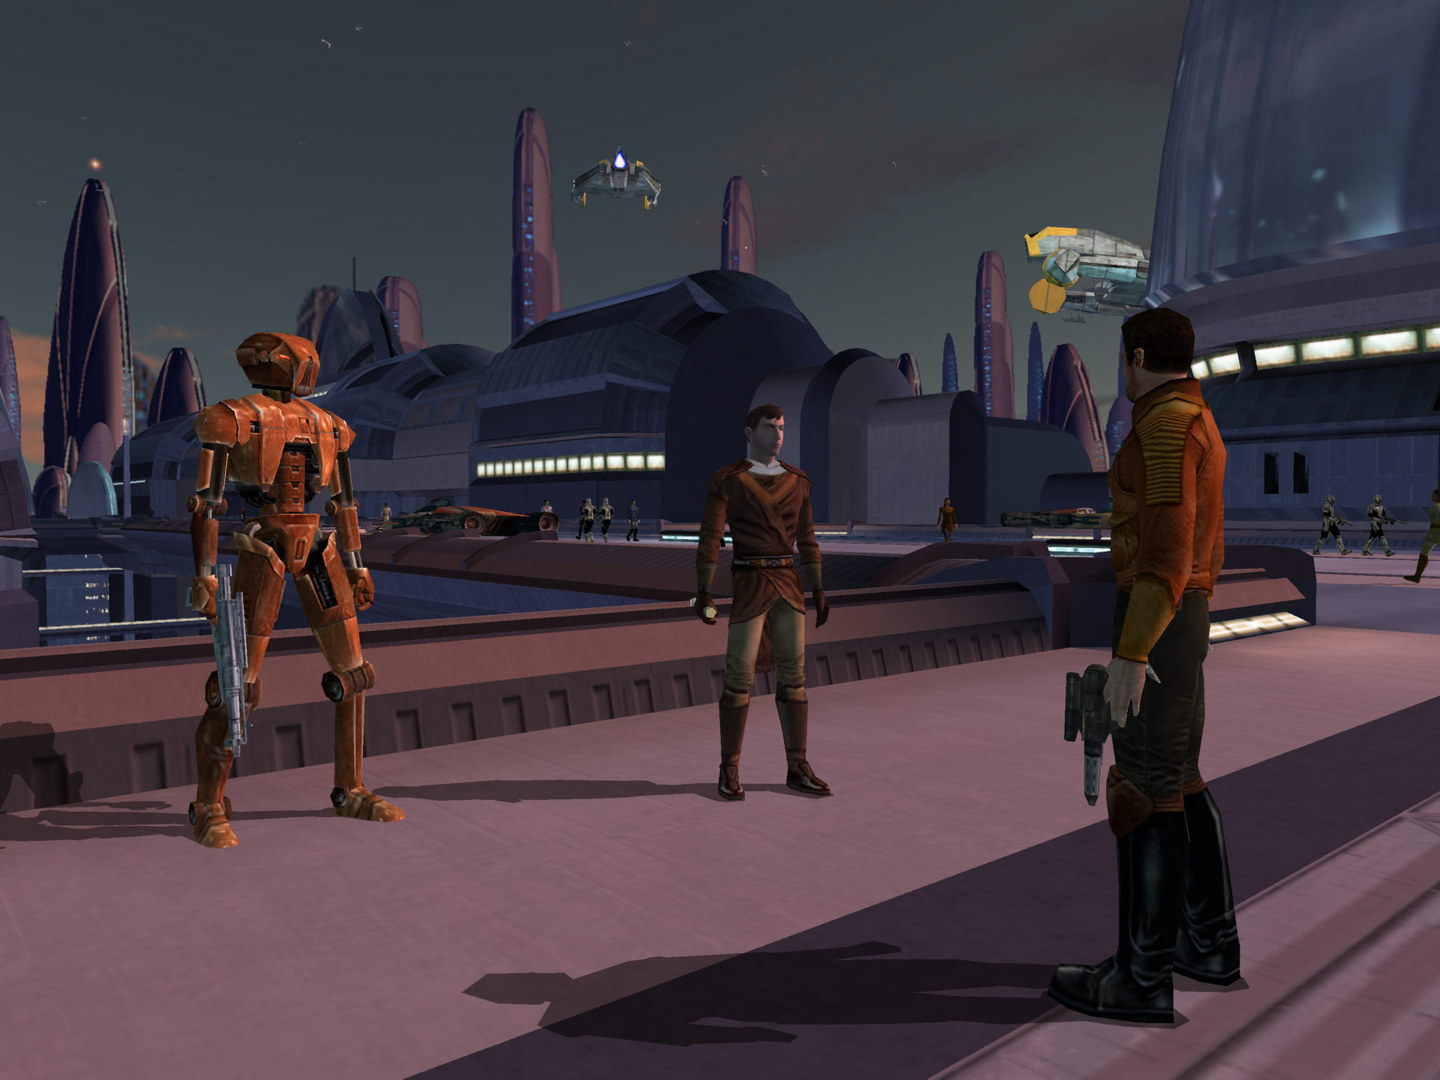 10. Star Wars: Knights of the Old Republic